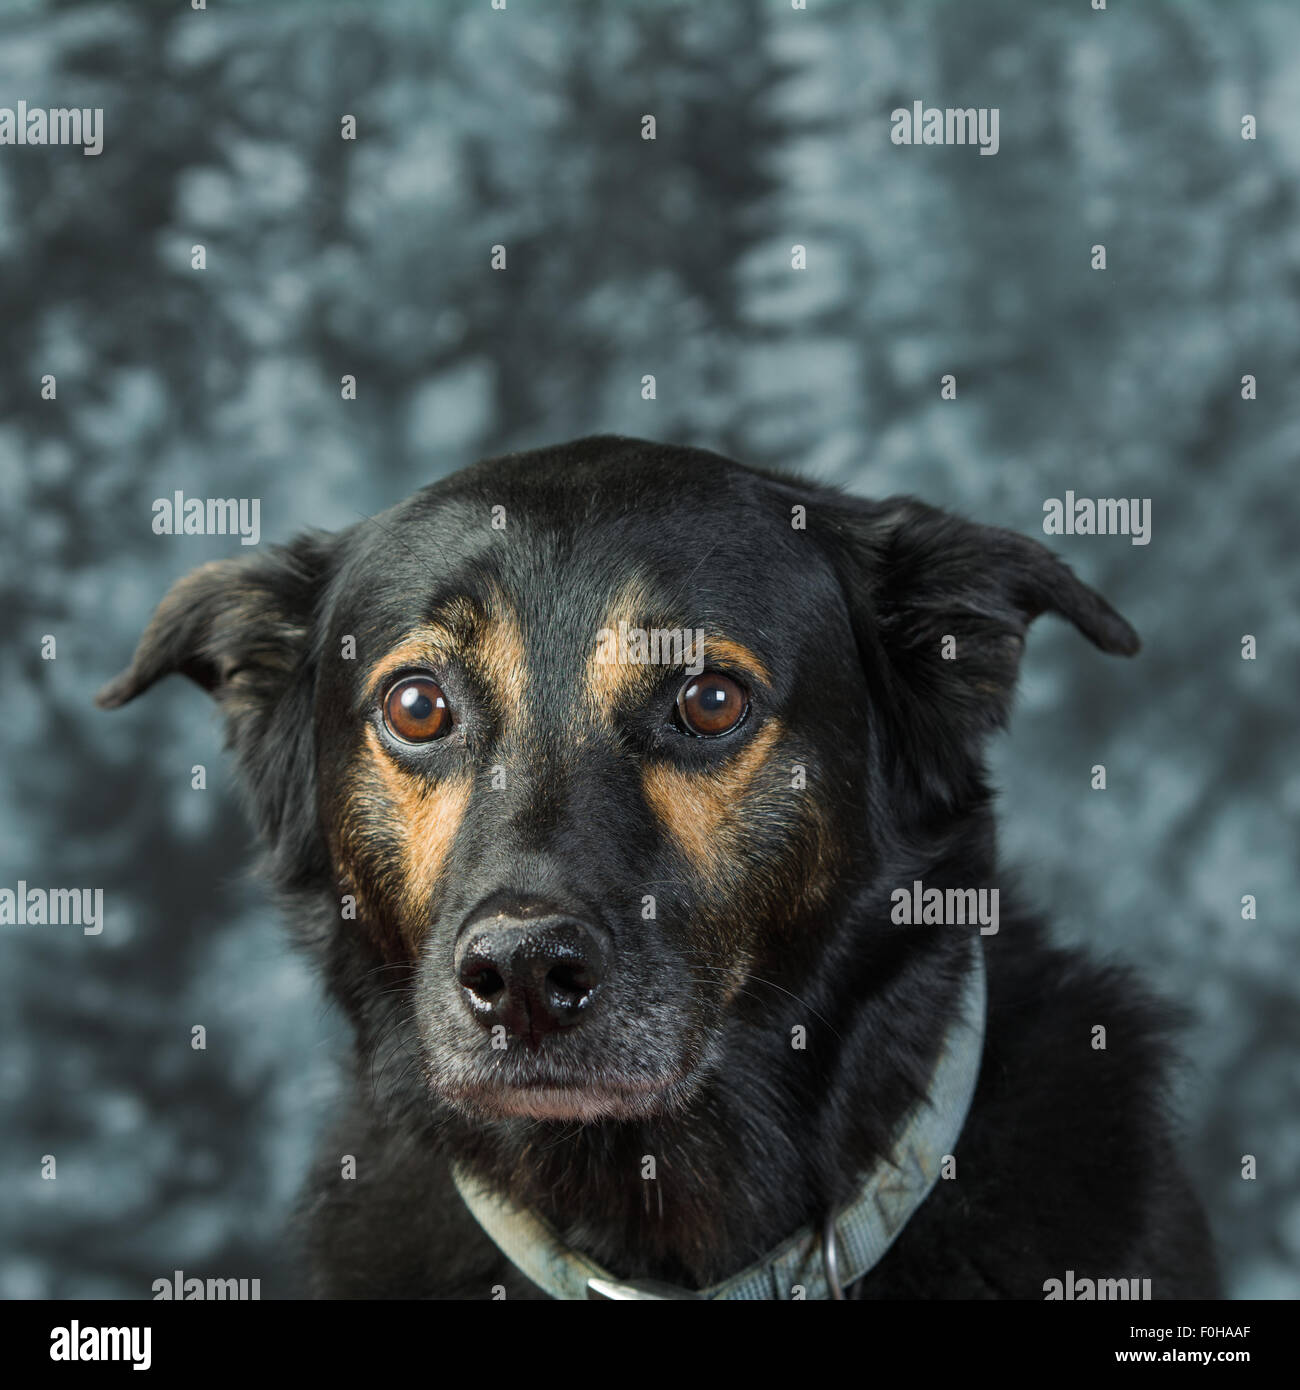 black dog sadly looks at camera stock photo, royalty free image